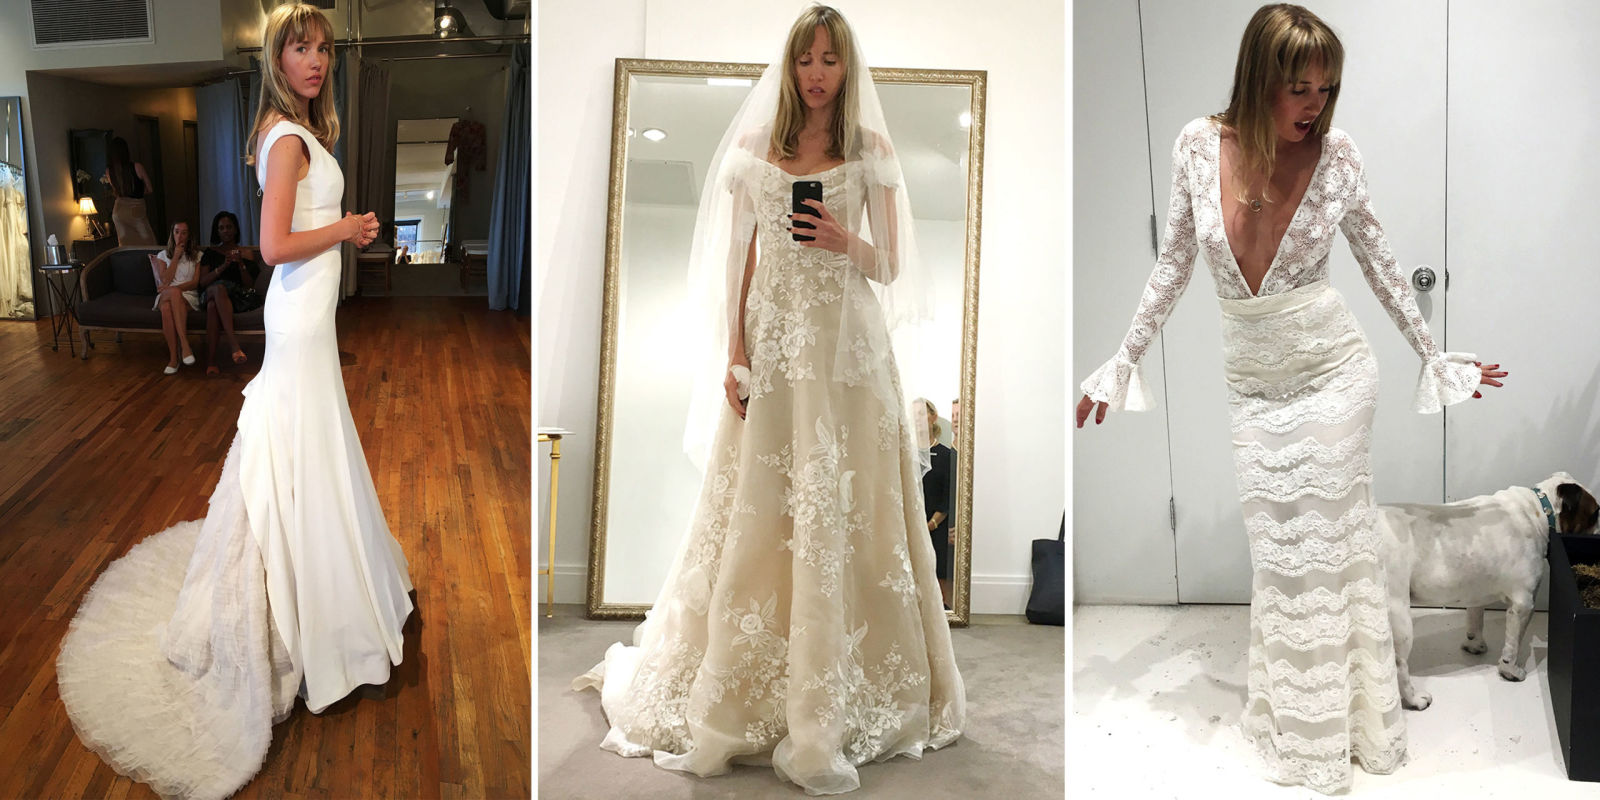 Woman Becomes 11th Bride to Wear 102-Year-Old Family Wedding Dress ...